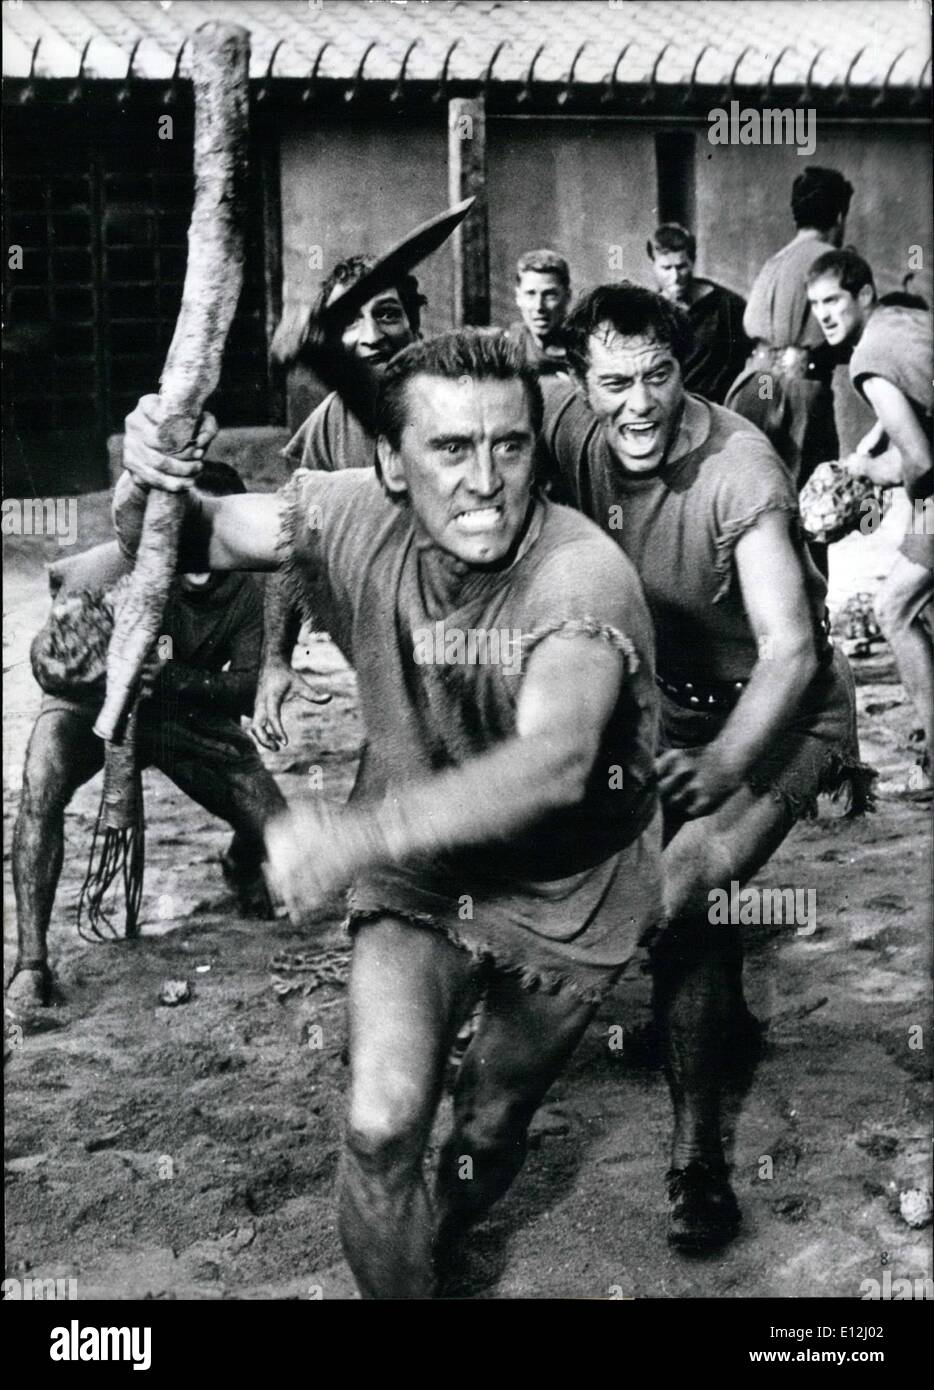 Feb. 24, 2012 - Riot of the slaves. Kirk Douglas plays the part of gladiator Spartacus in the latest Hollywood monster film Spartacus based on the novel by Howard Fast. Spartacus was the leader of the greatest slave riot of the Roman Emperium. This film about him is to be the greatest thing ever made about this story. Keystone Photo, 6-12-60 - Stock Image